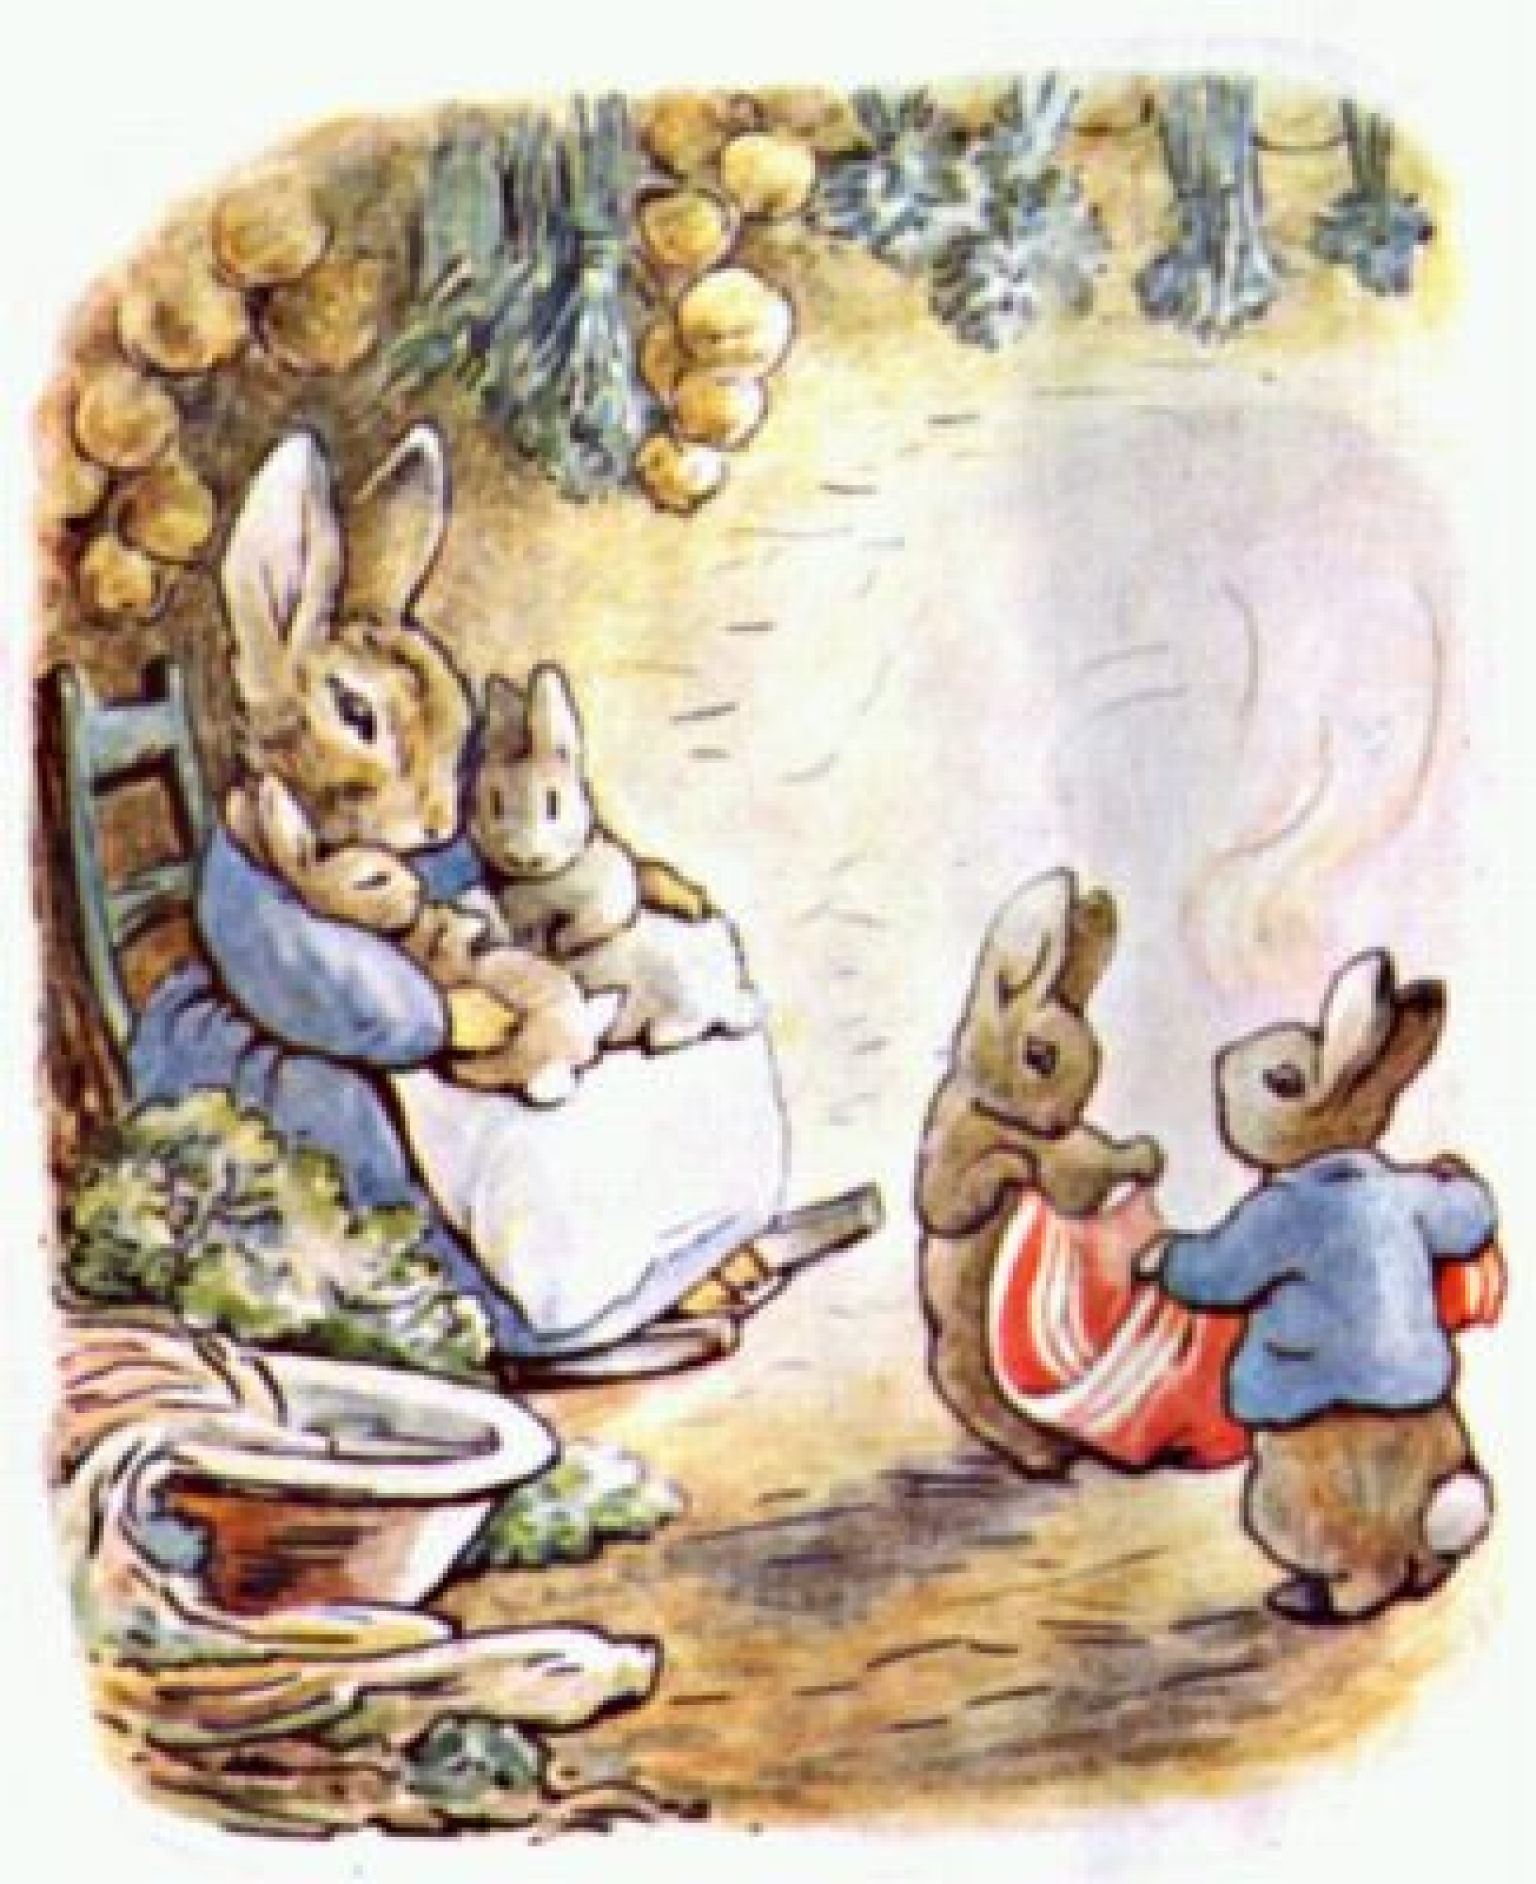 the tale of peter rabbit book report When mrs rabbit begs her four furry children to stay away from mr mcgregor's garden, the impish peter rabbit naturally takes this as an open invitation to create.